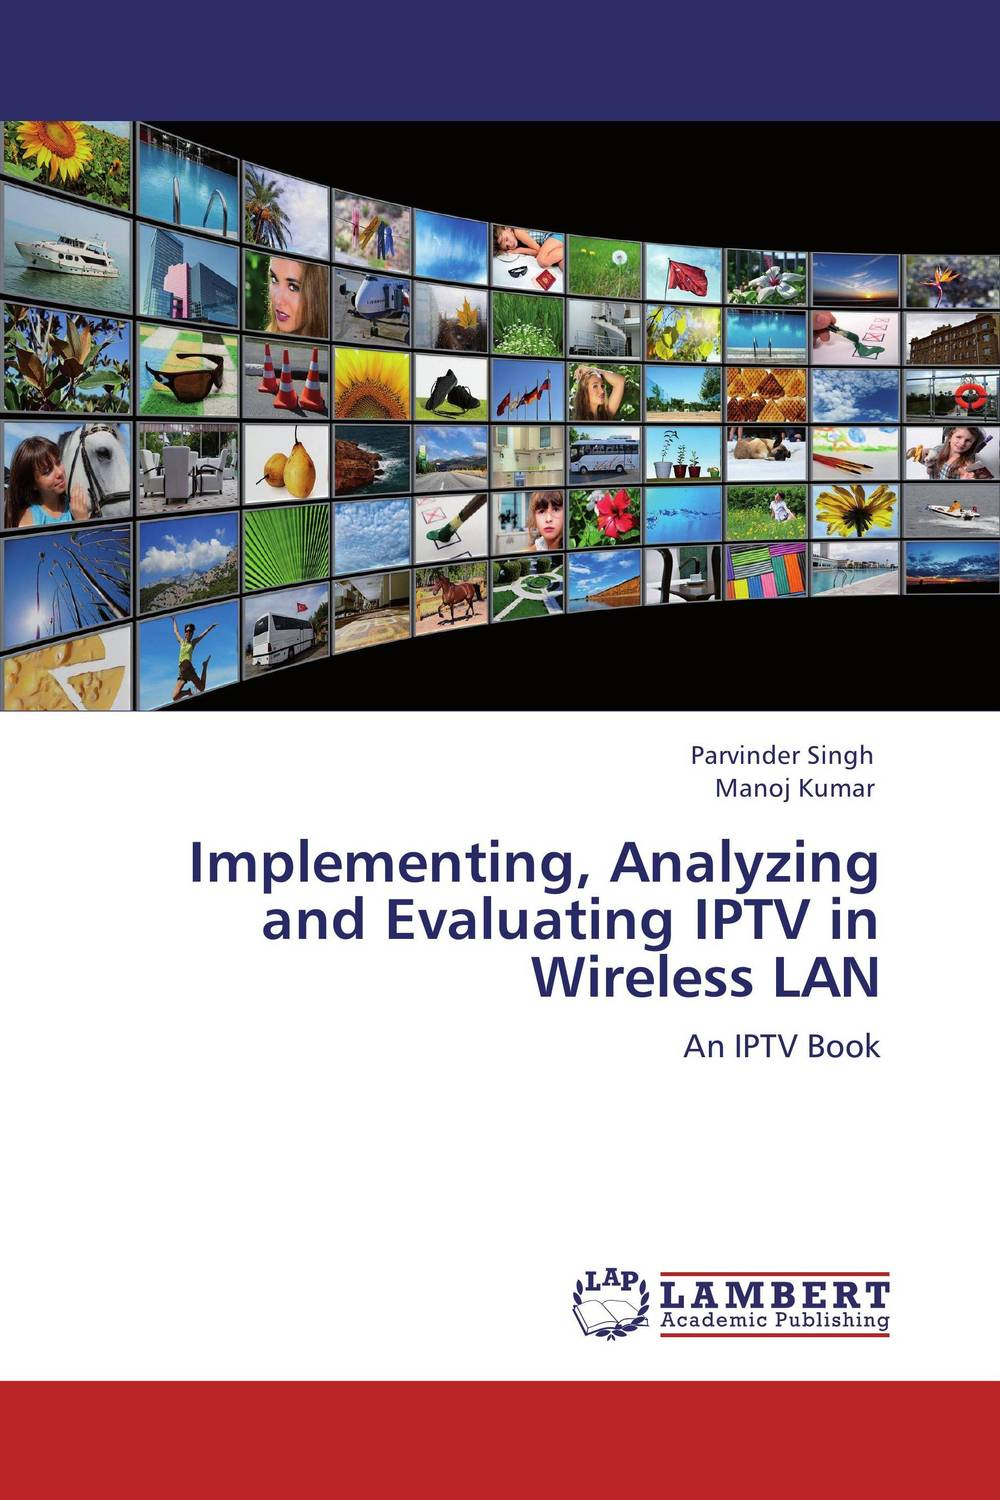 Implementing, Analyzing and Evaluating IPTV in Wireless LAN design a spam detector by analyzing user and e mail behavior